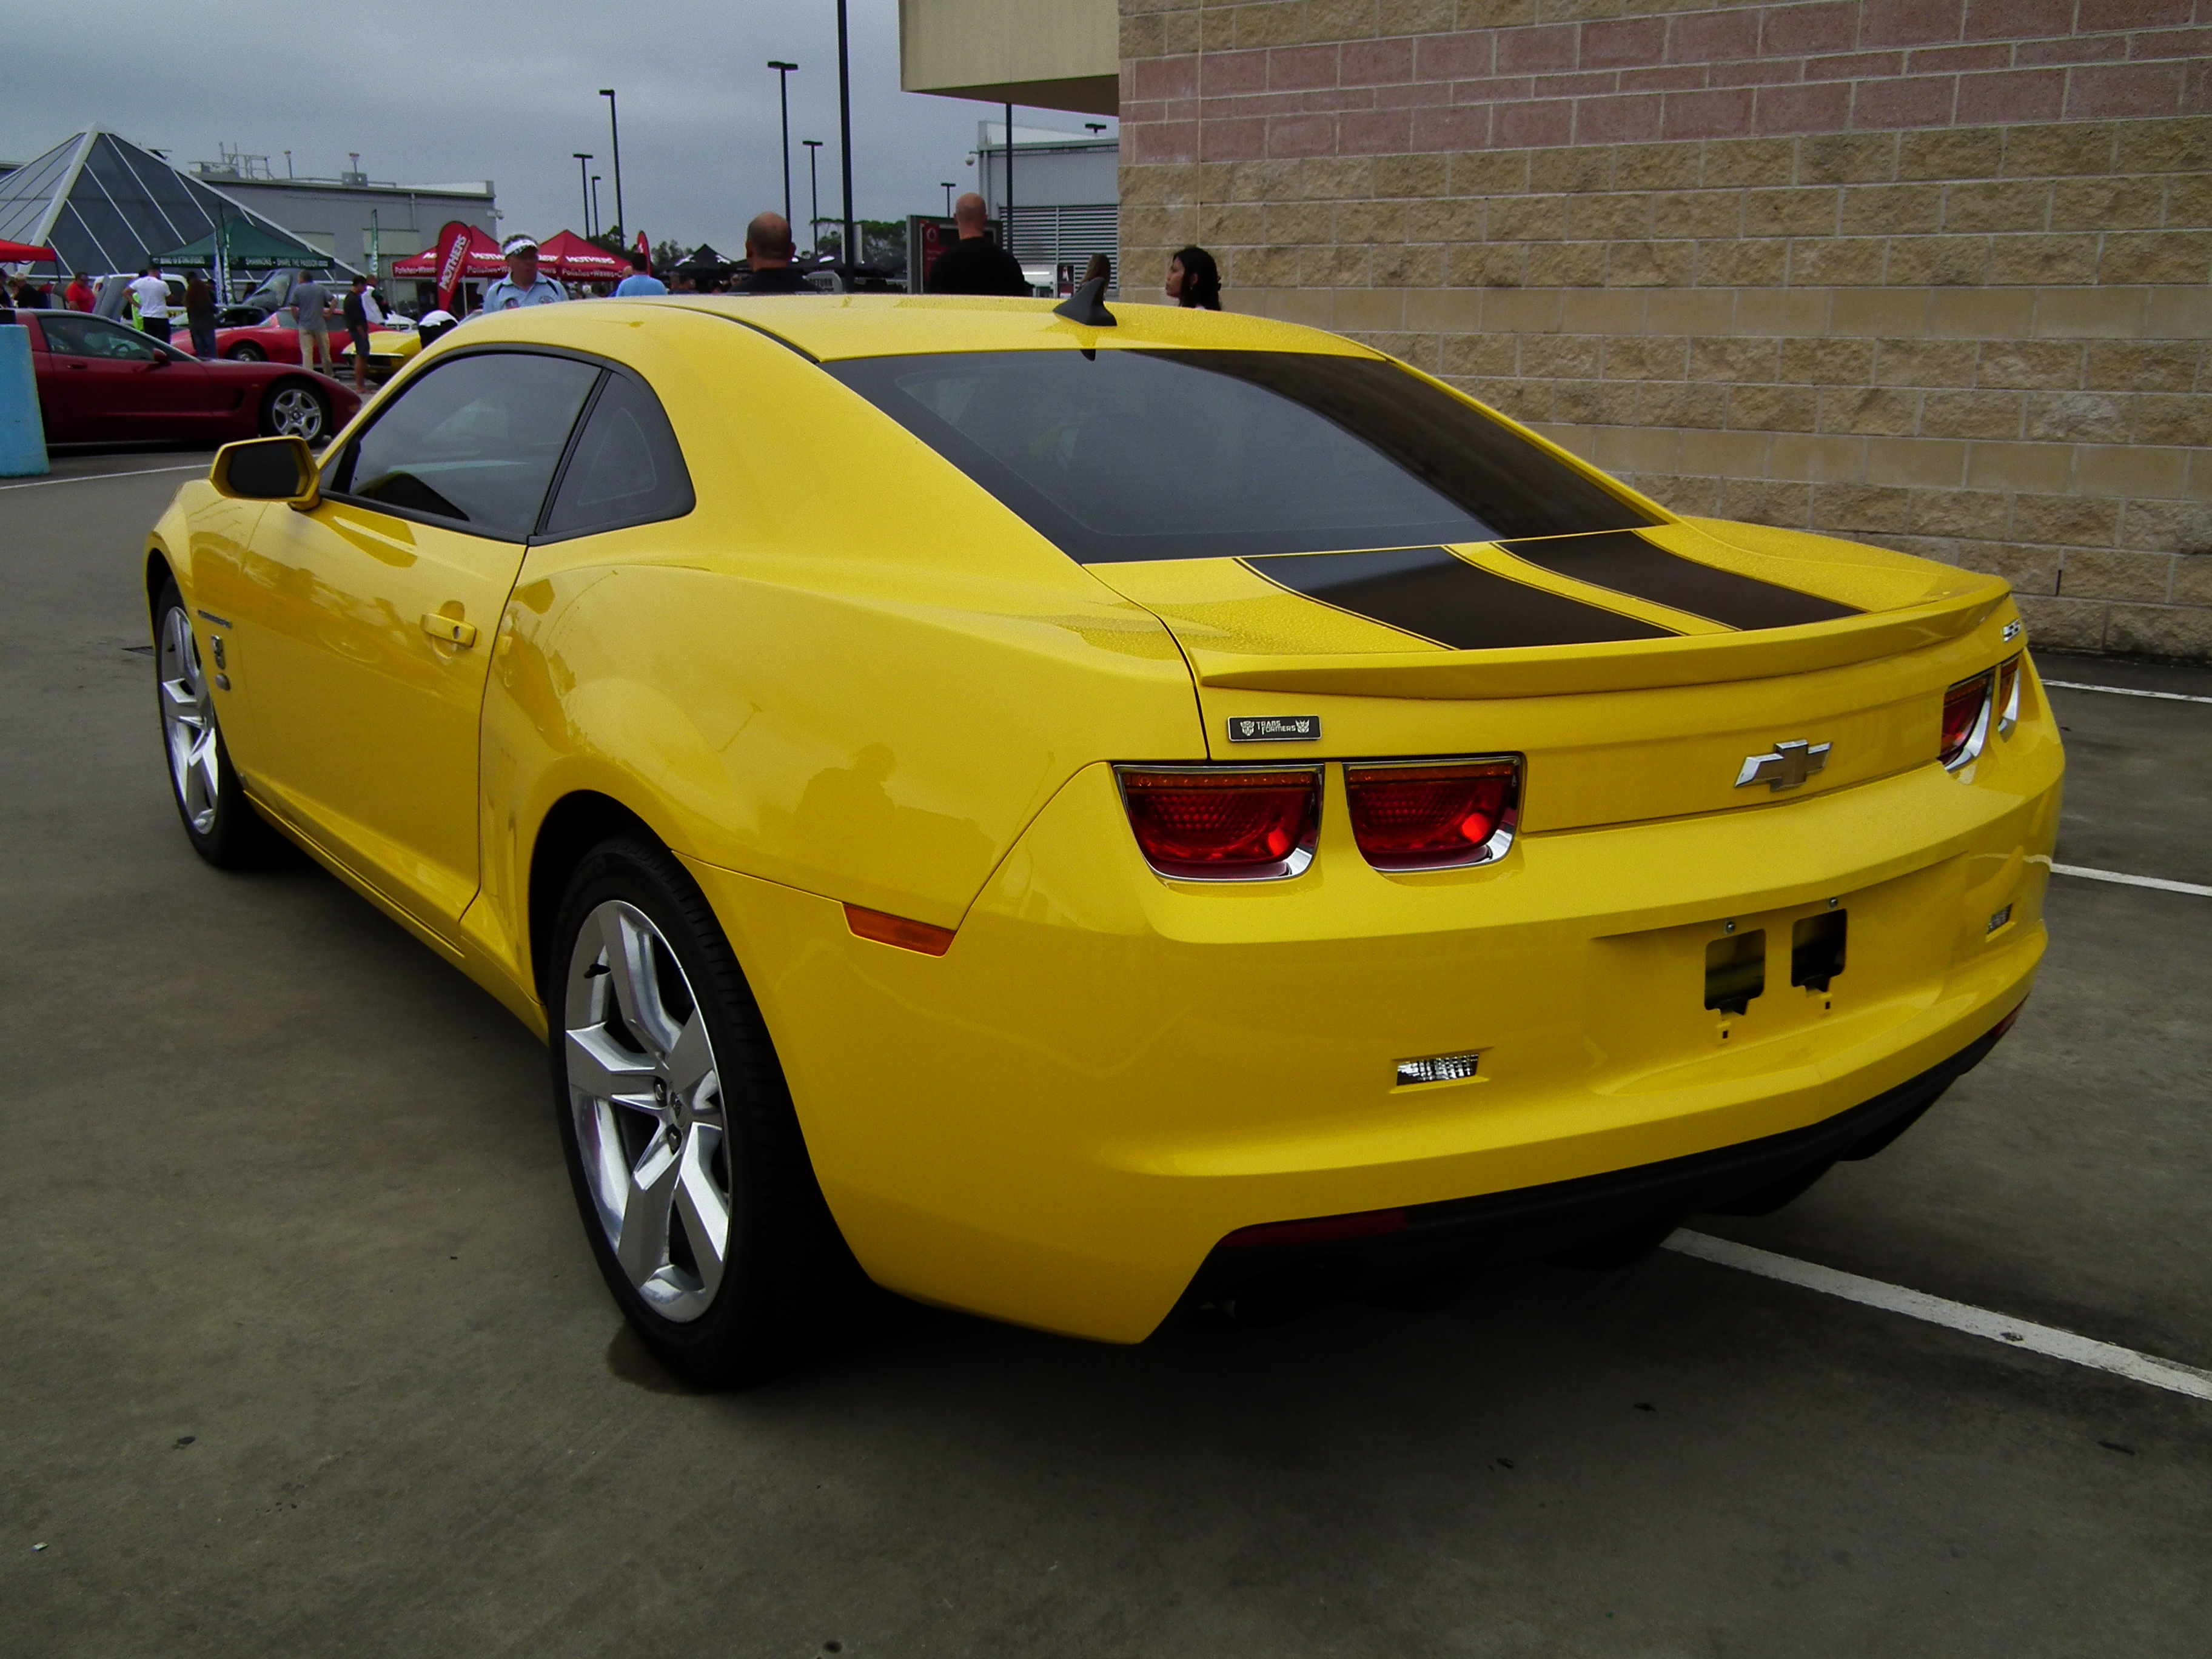 2010 camaro ss yellow images galleries with a bite. Black Bedroom Furniture Sets. Home Design Ideas